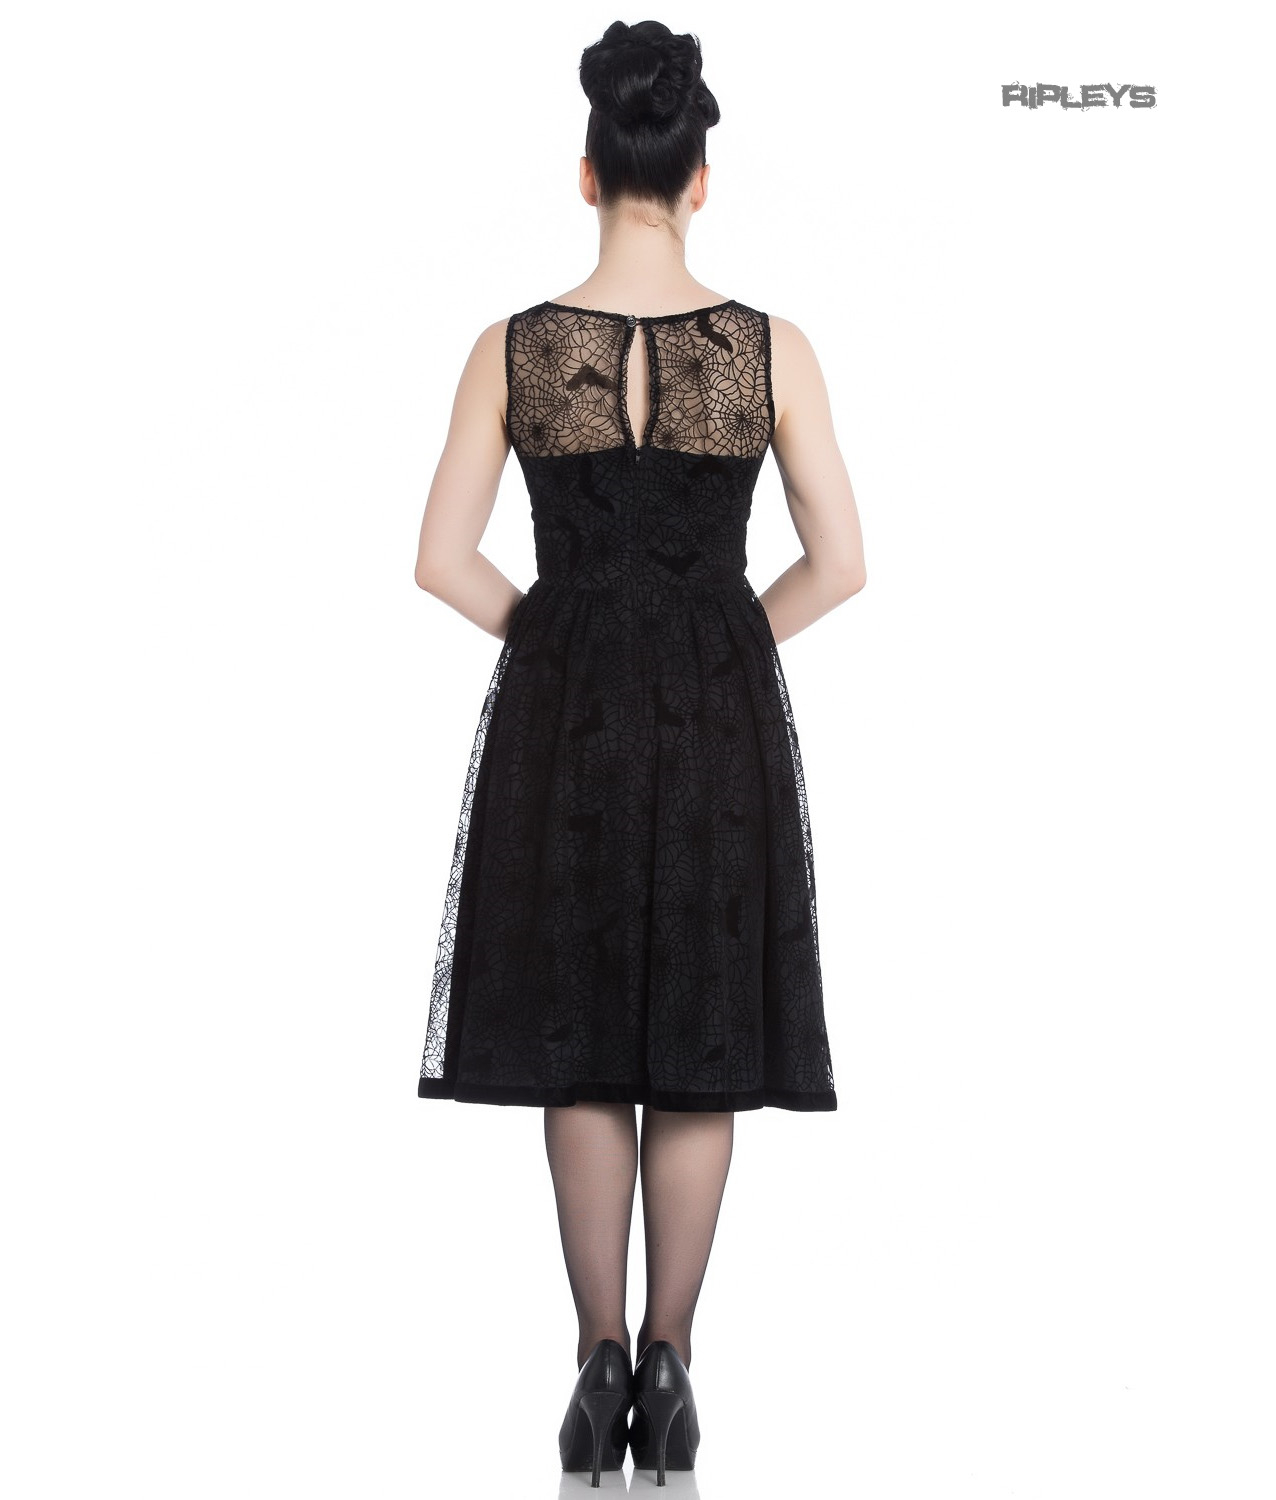 Hell-Bunny-50s-Black-Gothic-Net-Dress-Witchy-AMARANDE-Spiders-Bats-All-Sizes thumbnail 12